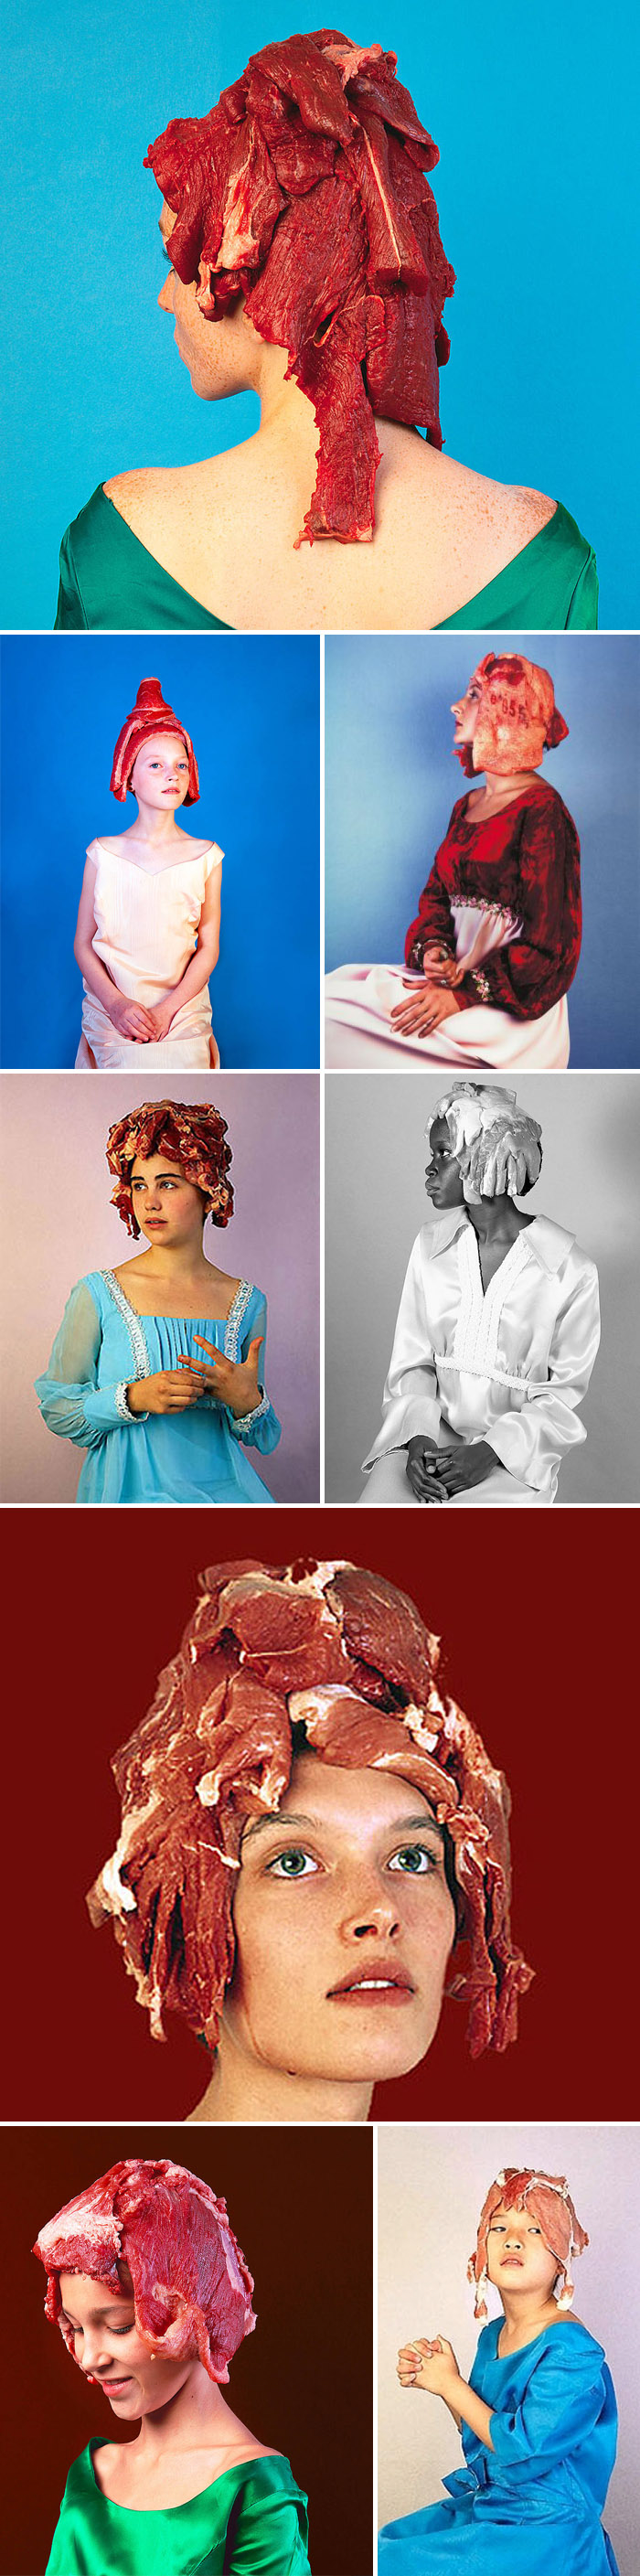 Meat wigs, mock renaissance portraits, fairies, kissina, photos, collabcubed